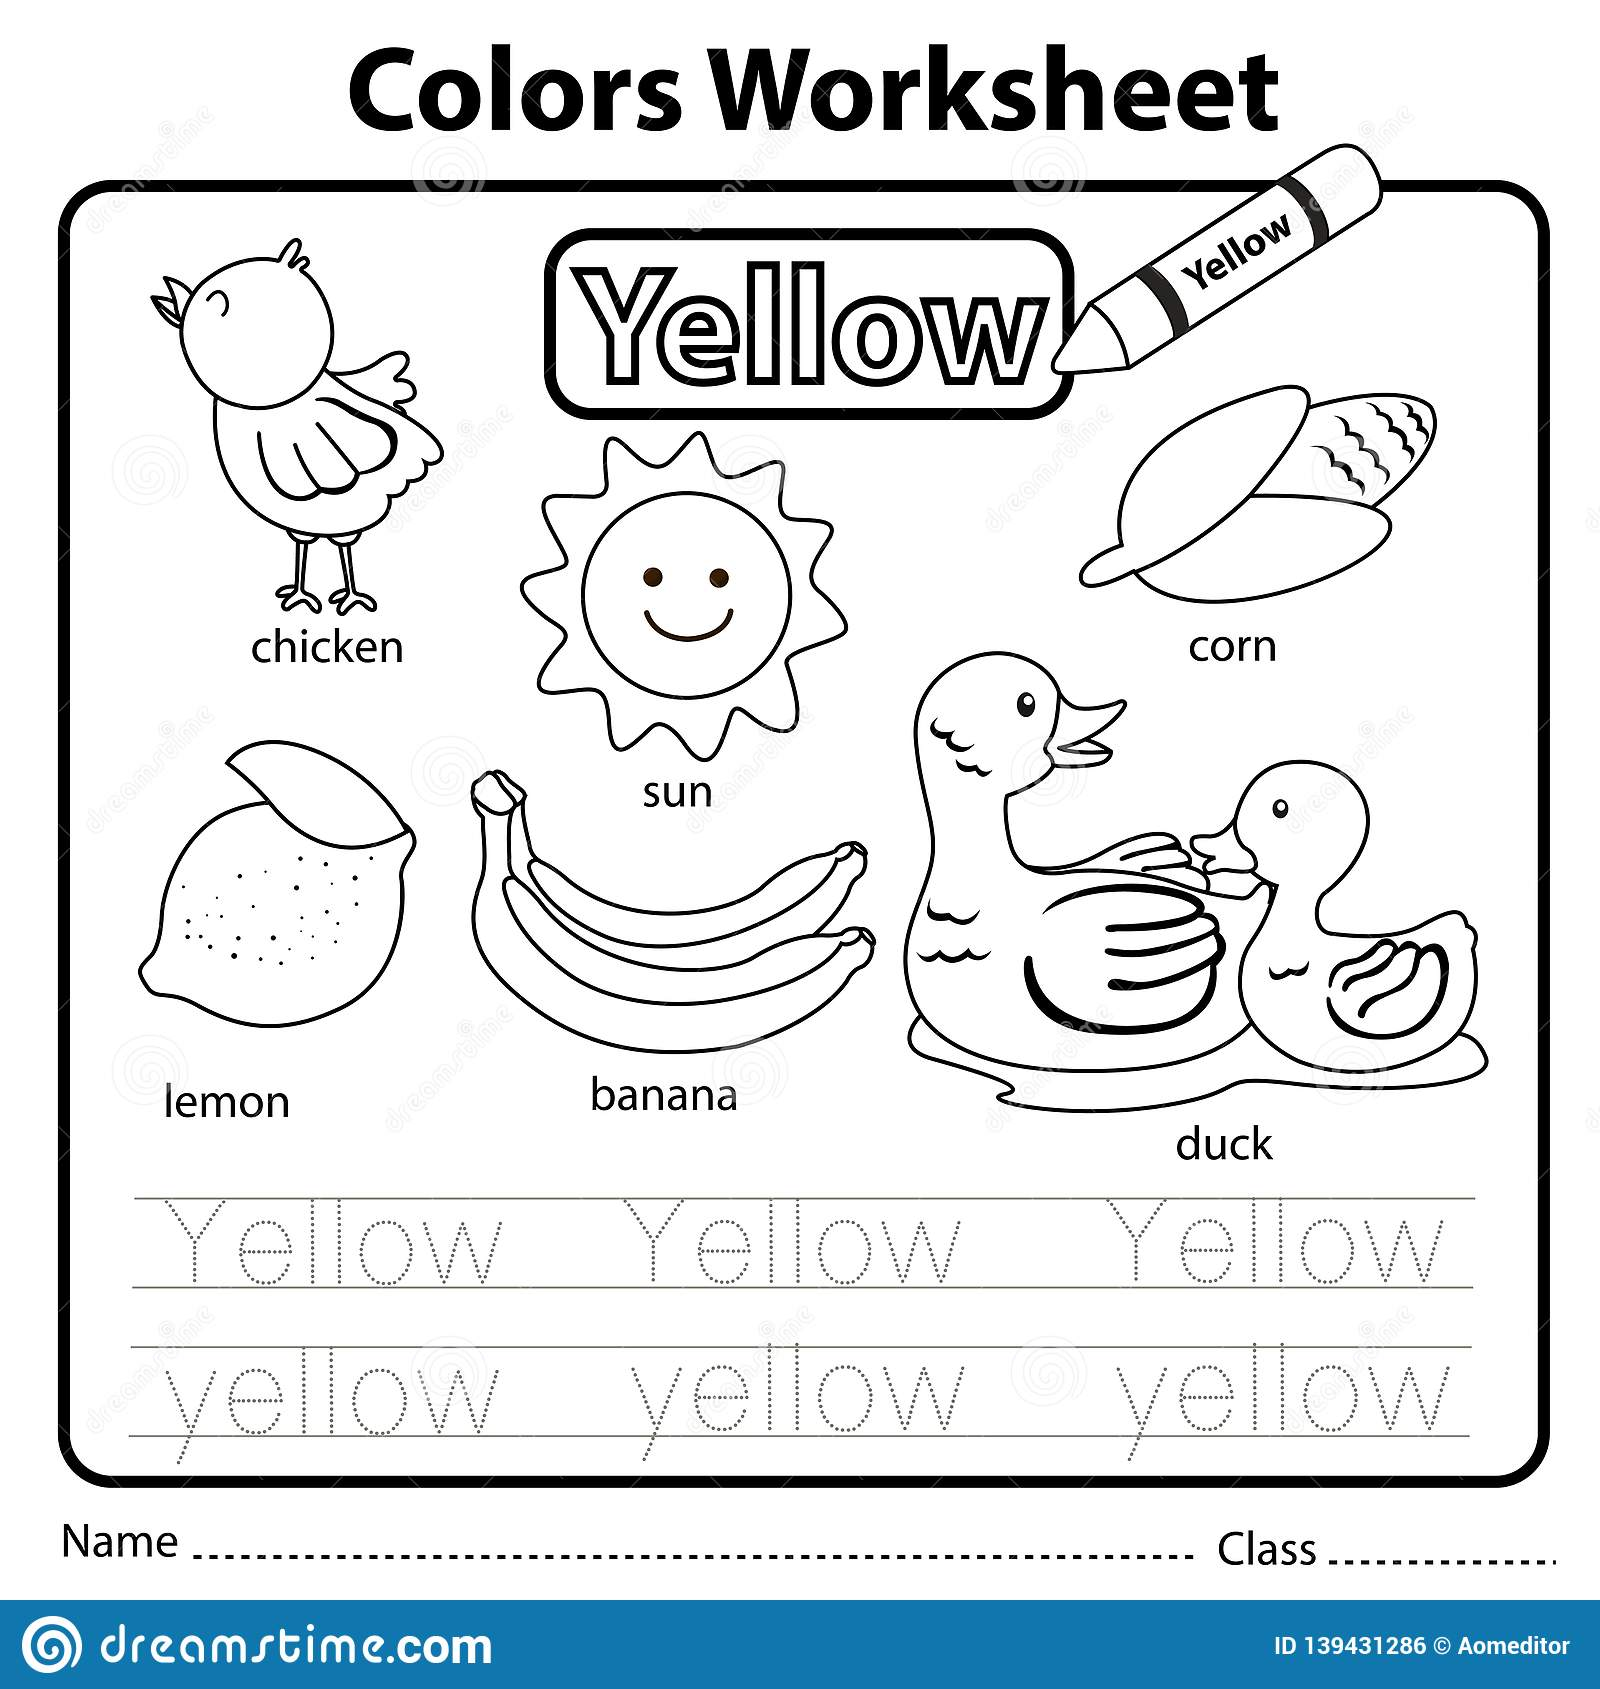 Illustrator Of Color Worksheet Yellow Stock Vector